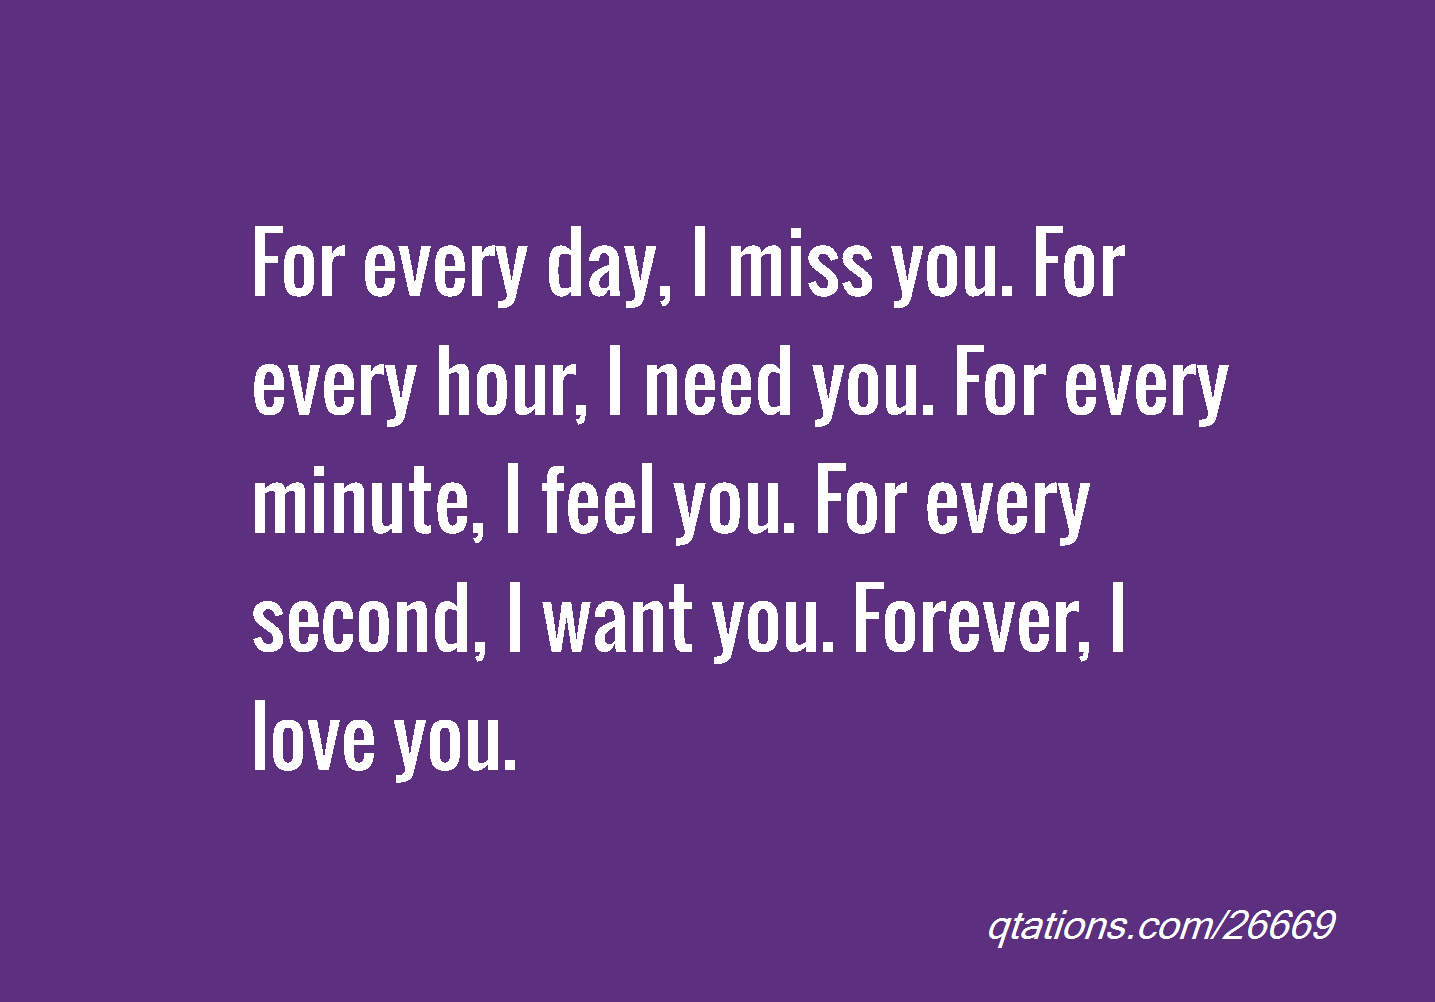 I Love You Quotes 4 Him : love+you+quotes+and+sayings+for+him+4.png